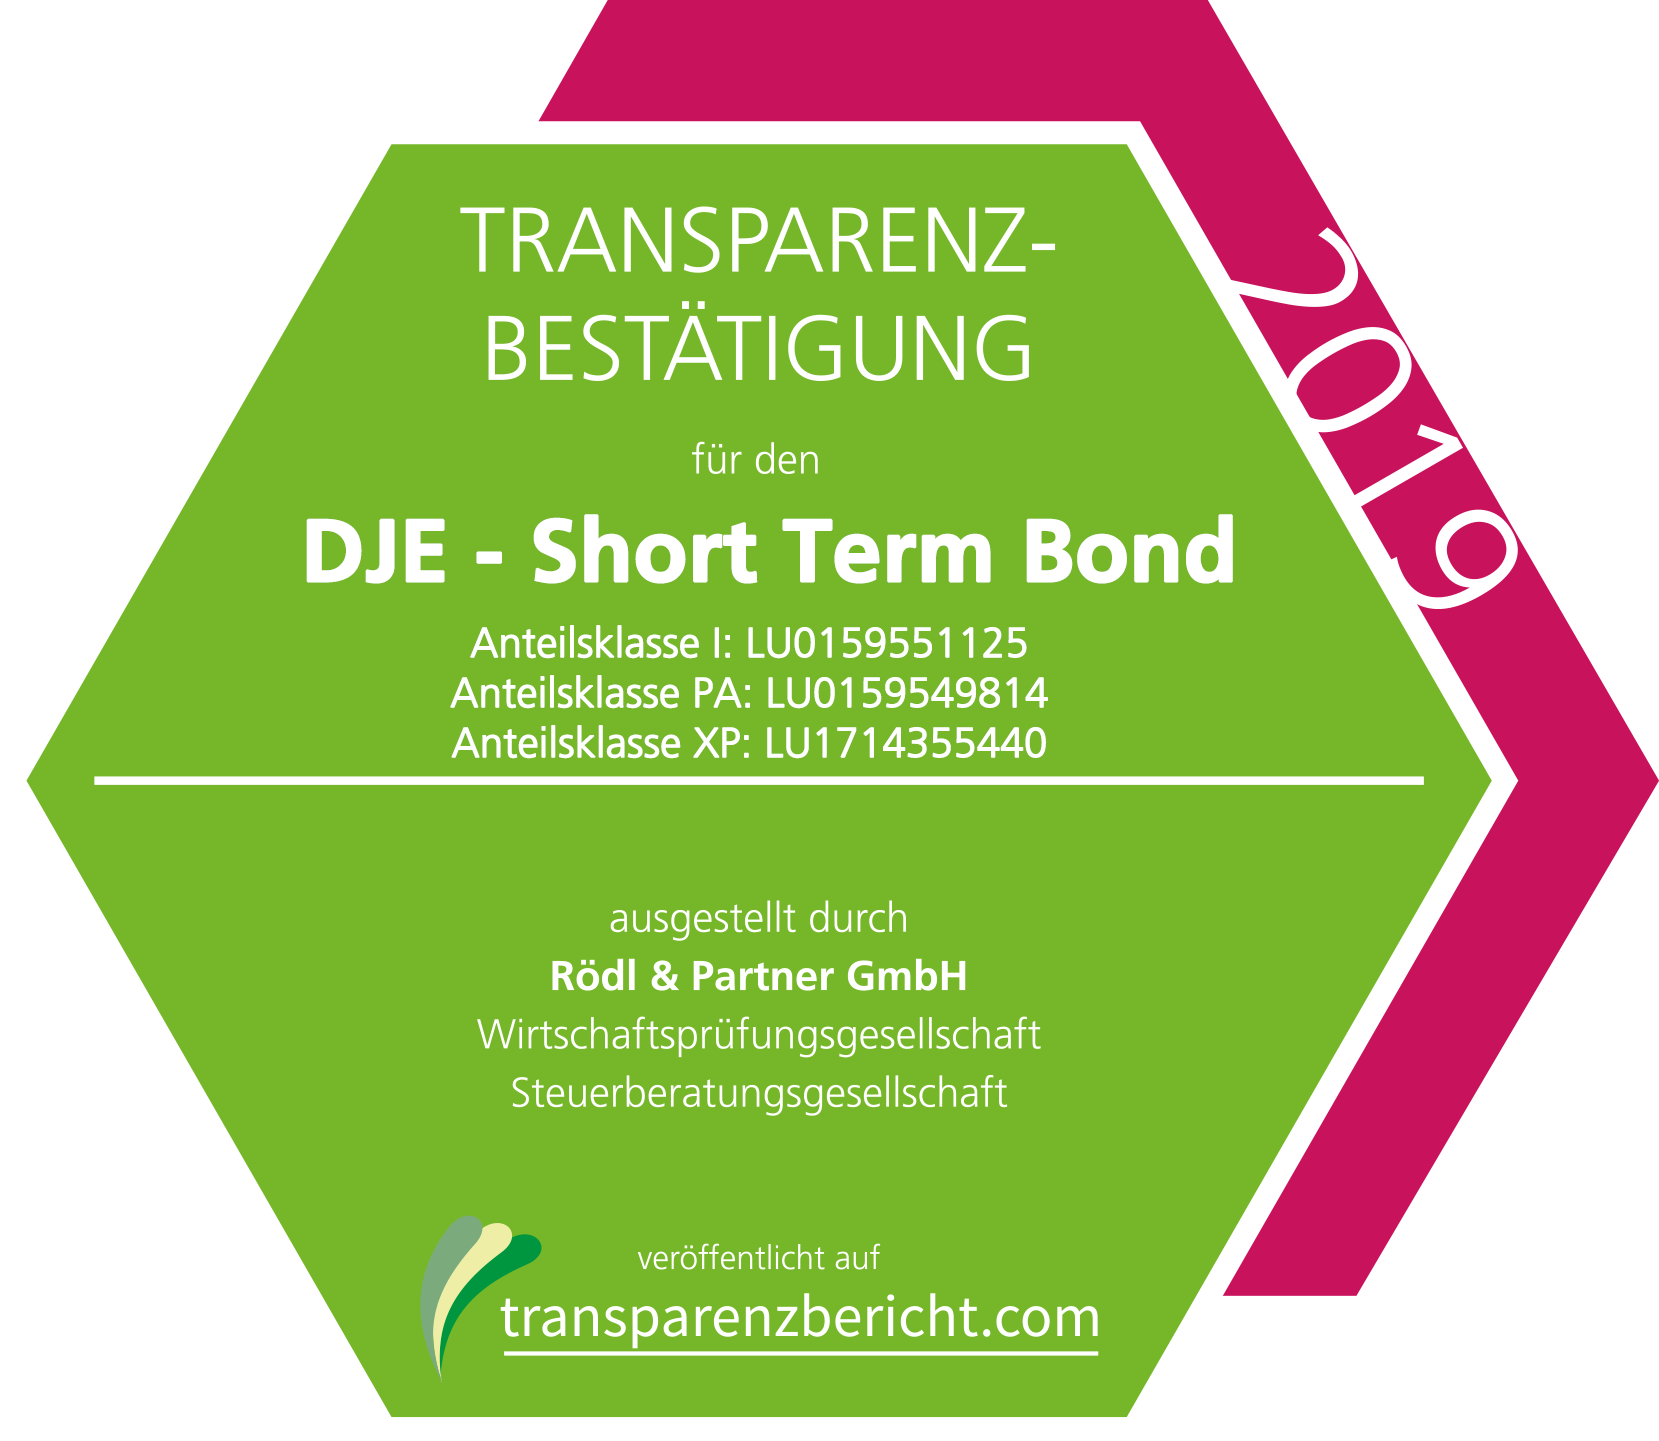 DJE - InterCash Transparenzbestätigung 2019